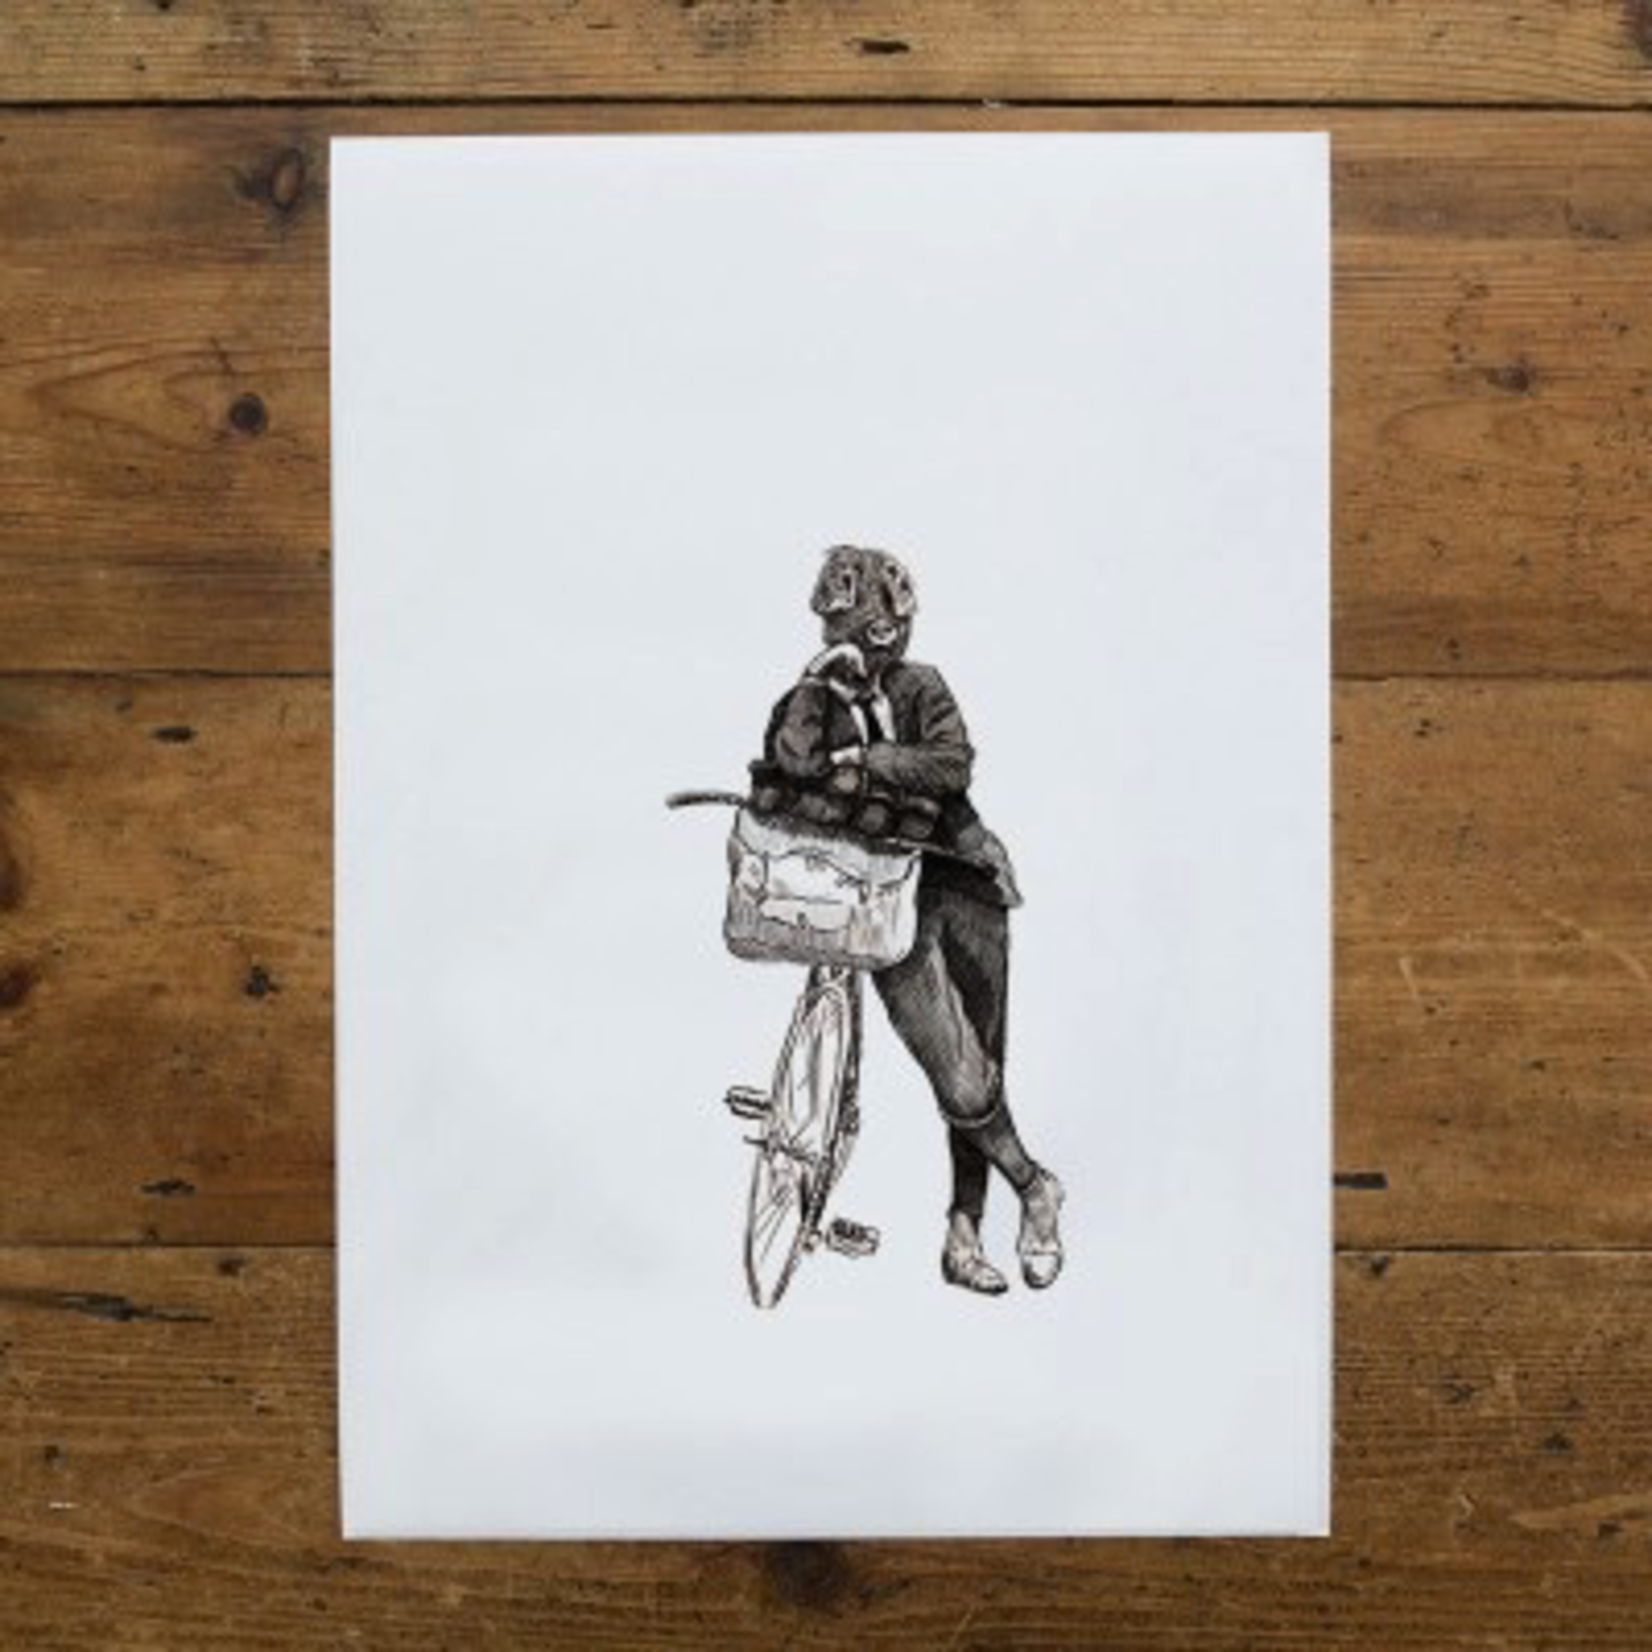 Ben Rothery Illustrator Ben Rothery A4 Print Wilbur Pig Black and White